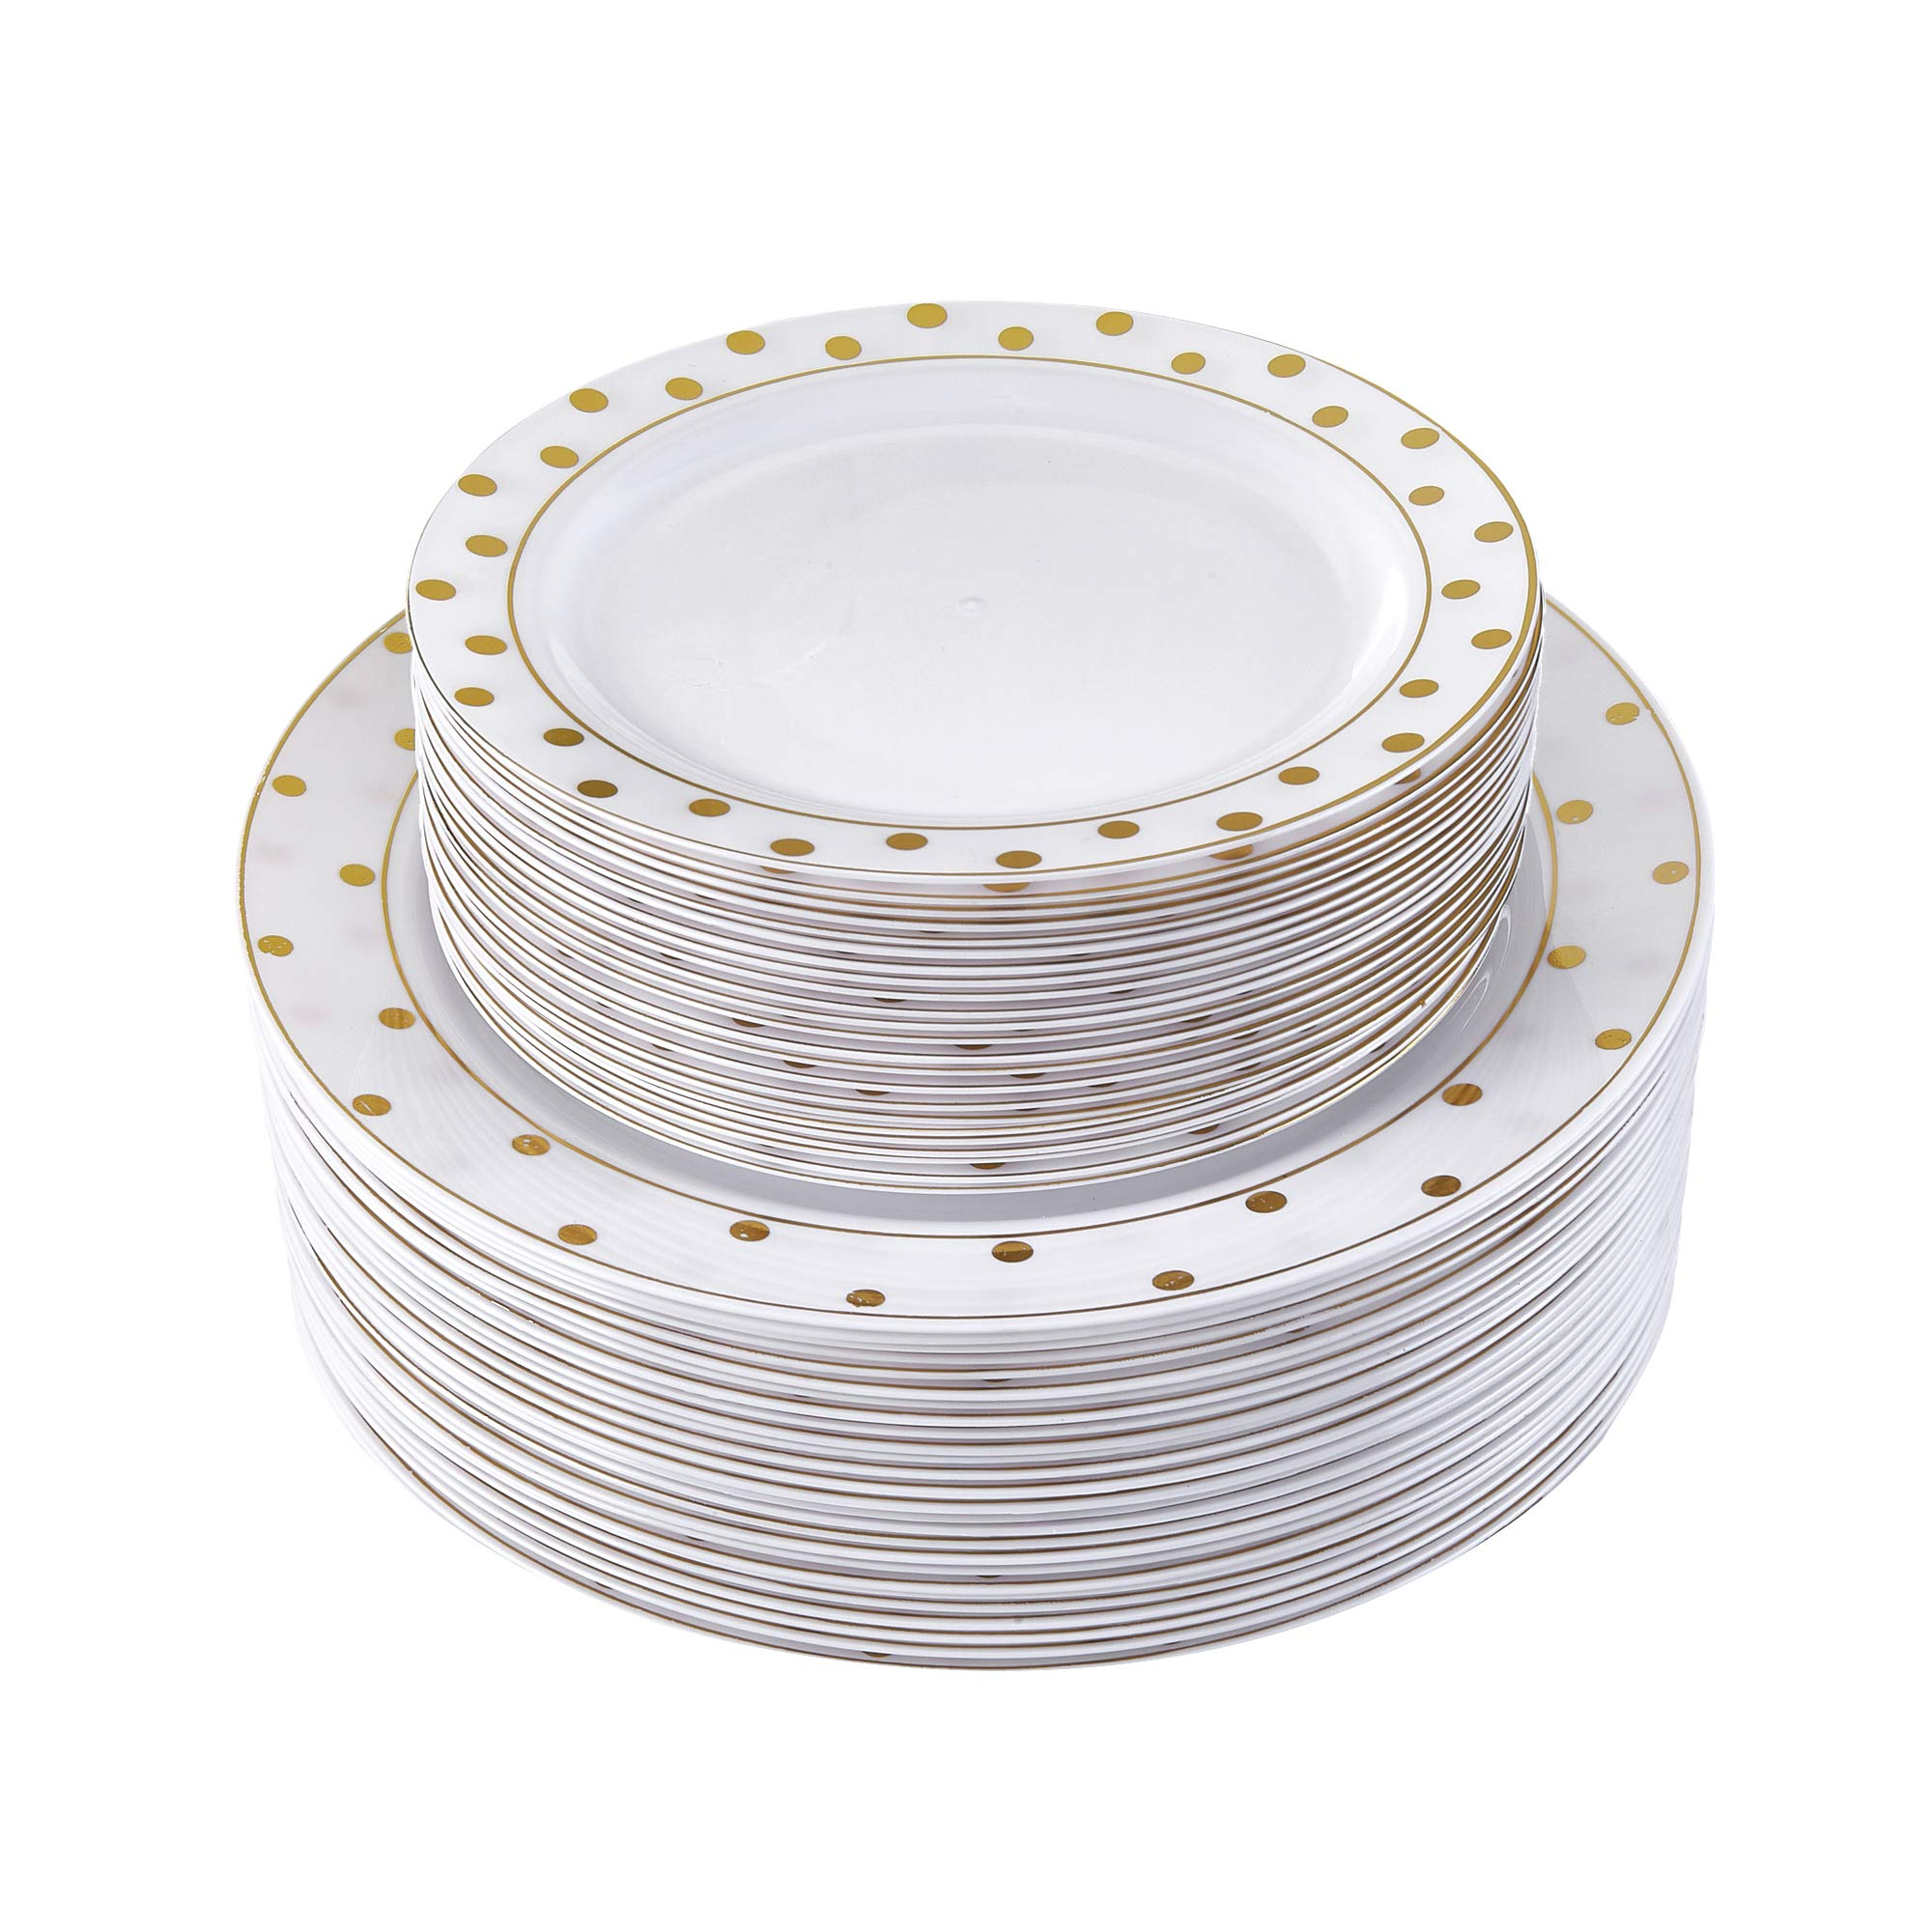 80 PC ELEGANT PLASTIC DINNERWARE SET   40 Dinner Plates and 40 Salad Plates   Heavy Duty Plastic Plates   for Upscale Wedding and Dining   Charming Dots Collection (Gold)